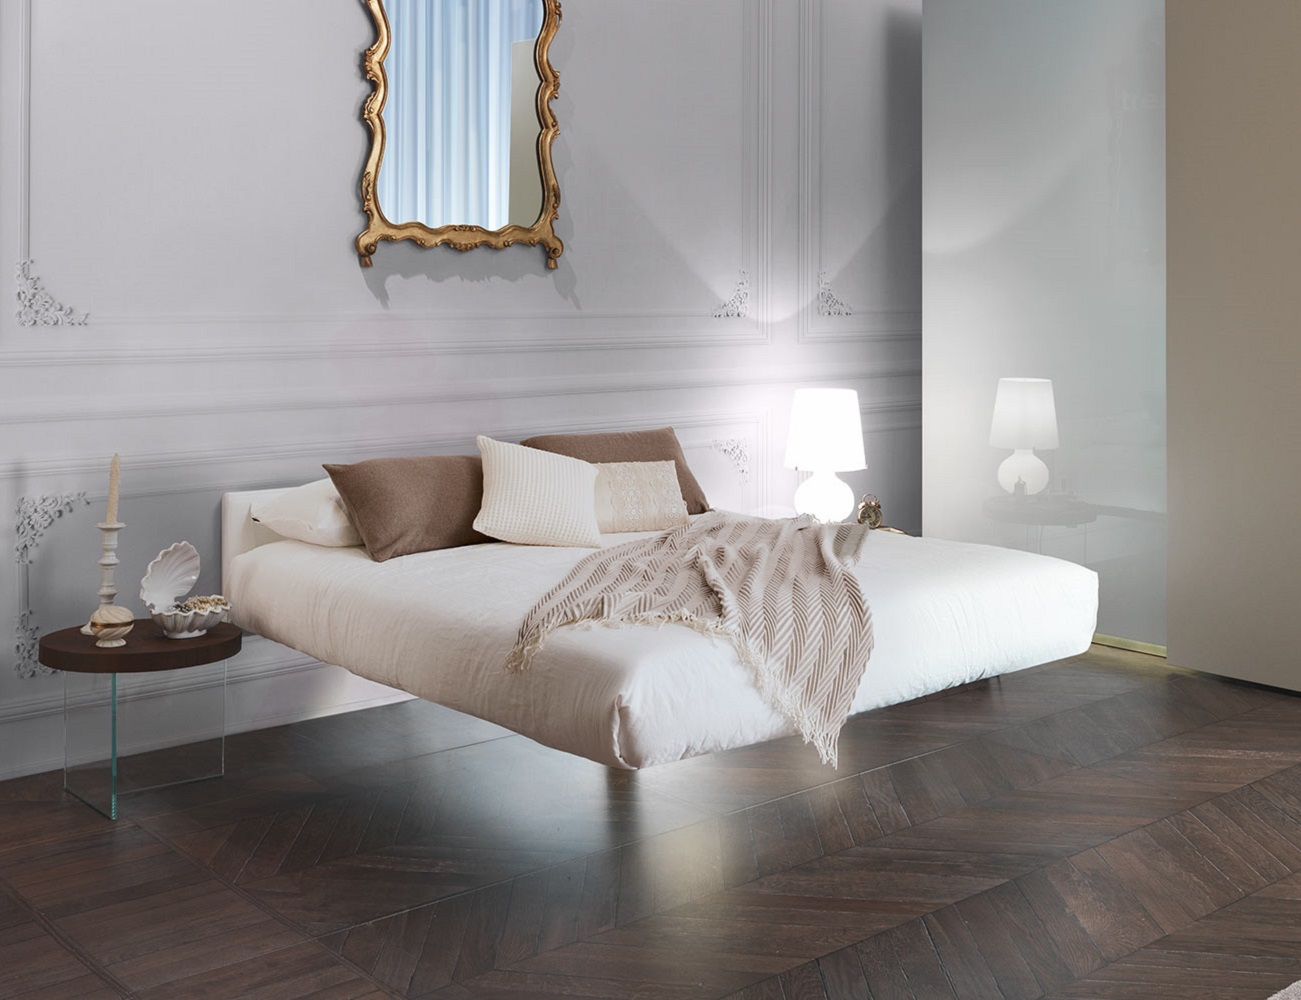 Fluttua Floating Bed by Daniele Lago loading=